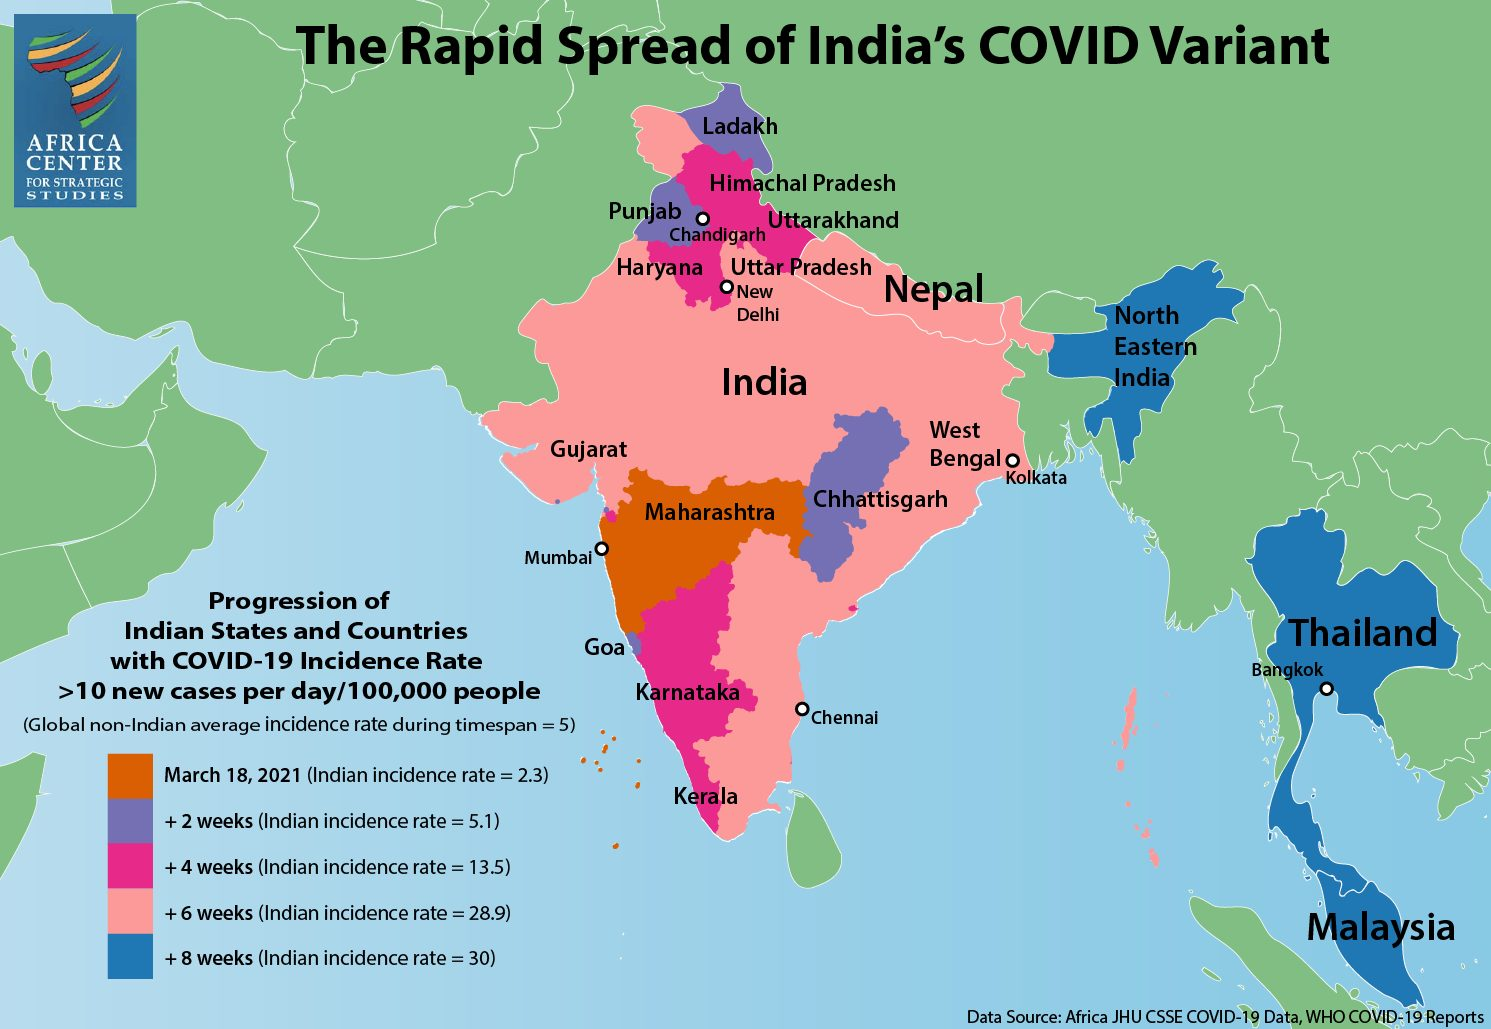 The Rapid Spread of India's COVID Variant